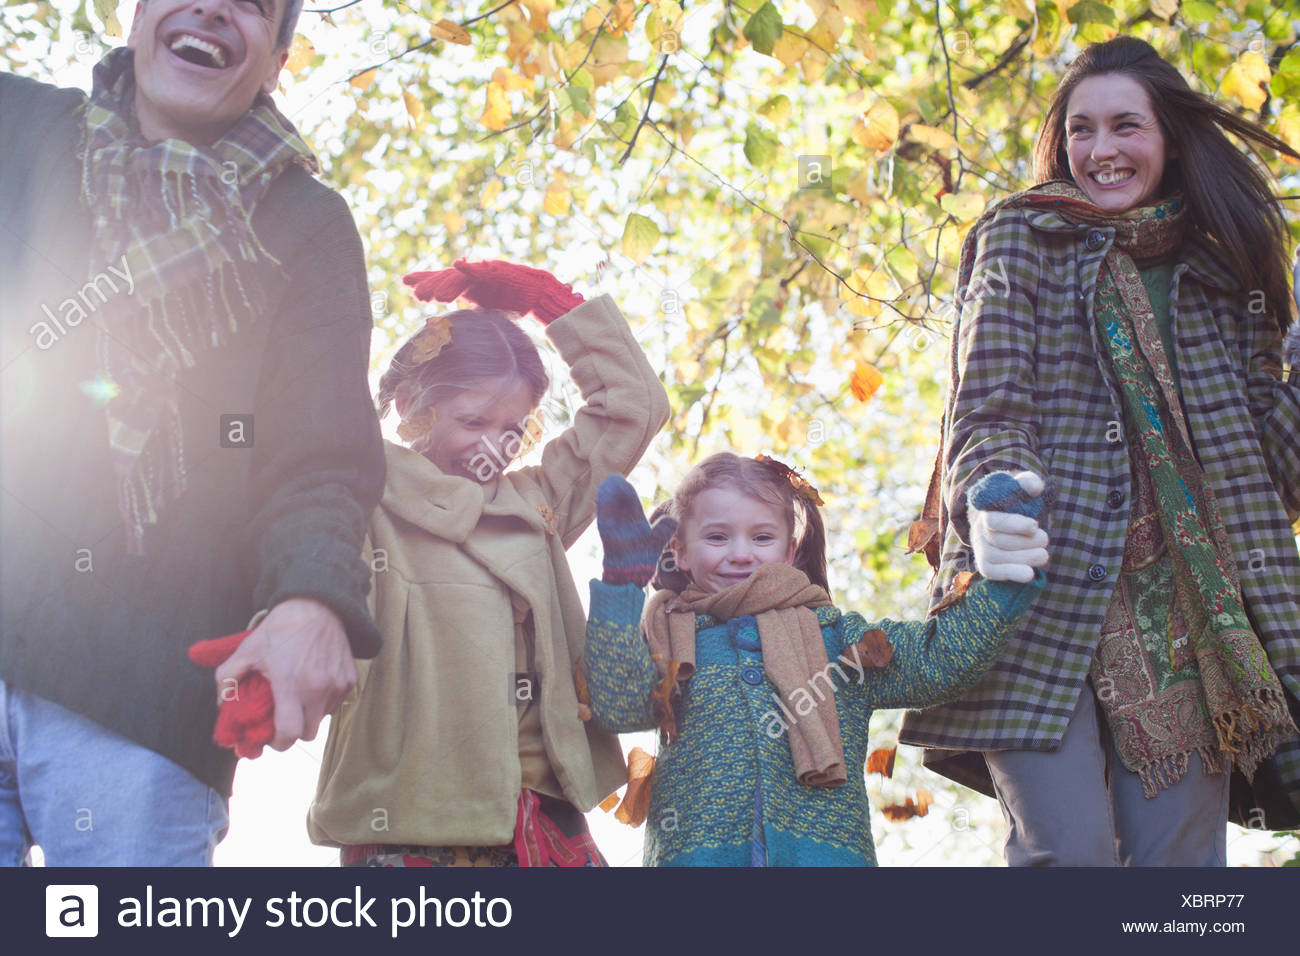 Famille rire et holding hands outdoors Photo Stock